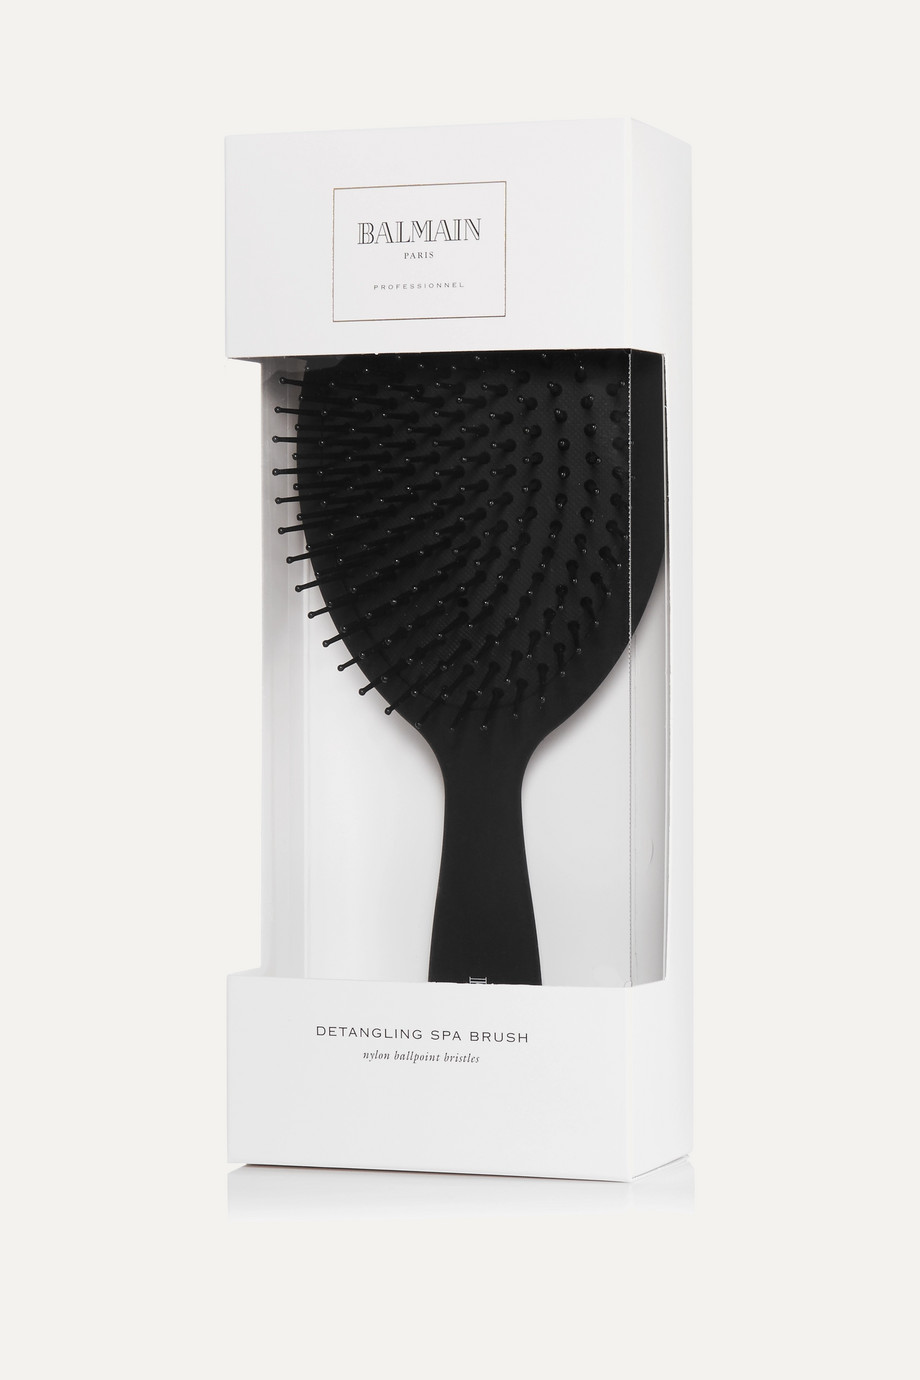 BALMAIN PARIS HAIR COUTURE Detangling Spa Brush